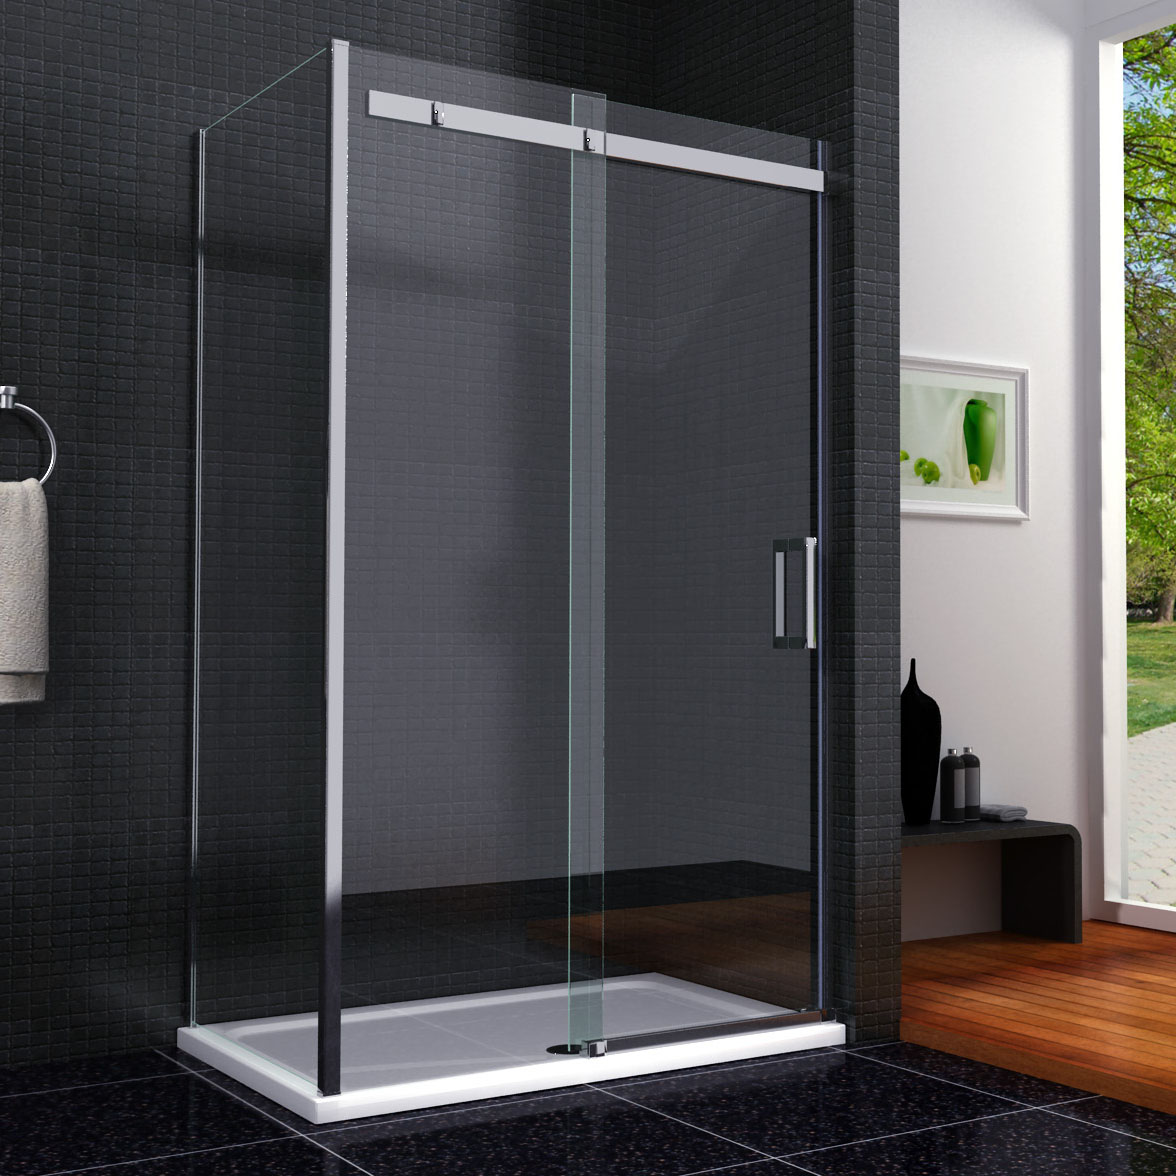 Bathroom Sliding Glass Doors: 1100 X 800 Frameless Shower Enclosure Sliding Door+Side